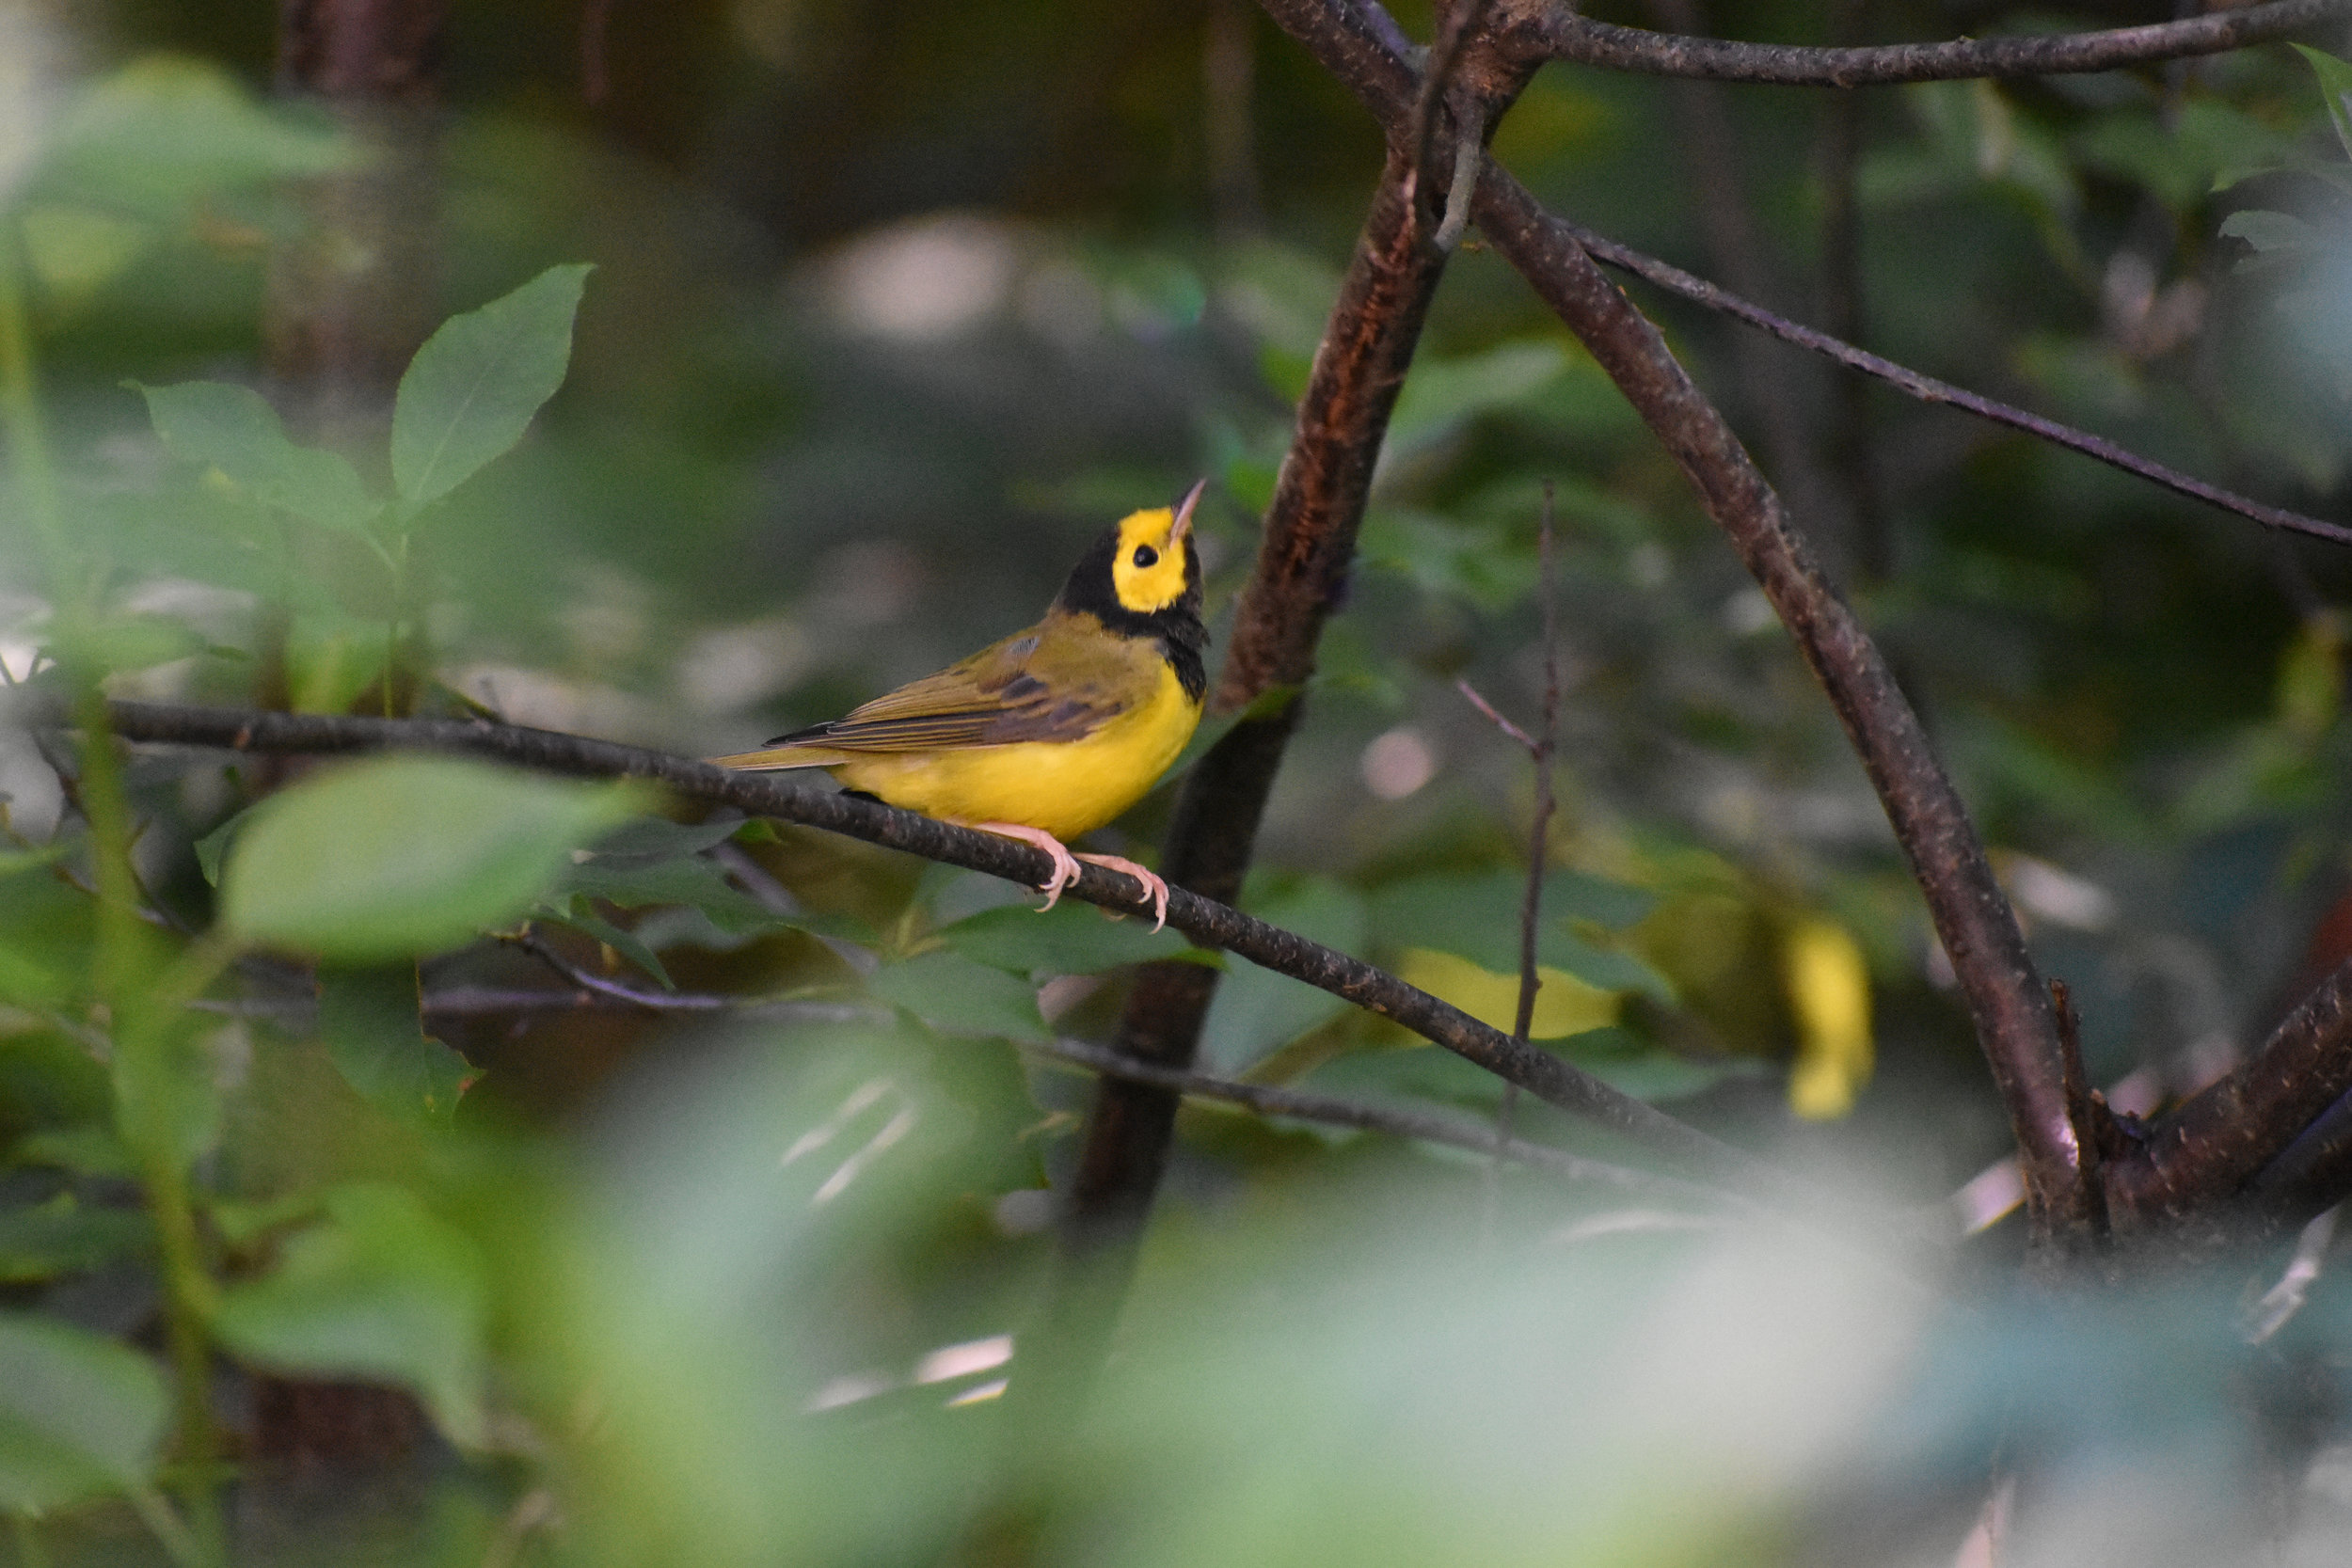 How to Find Hooded Warbler